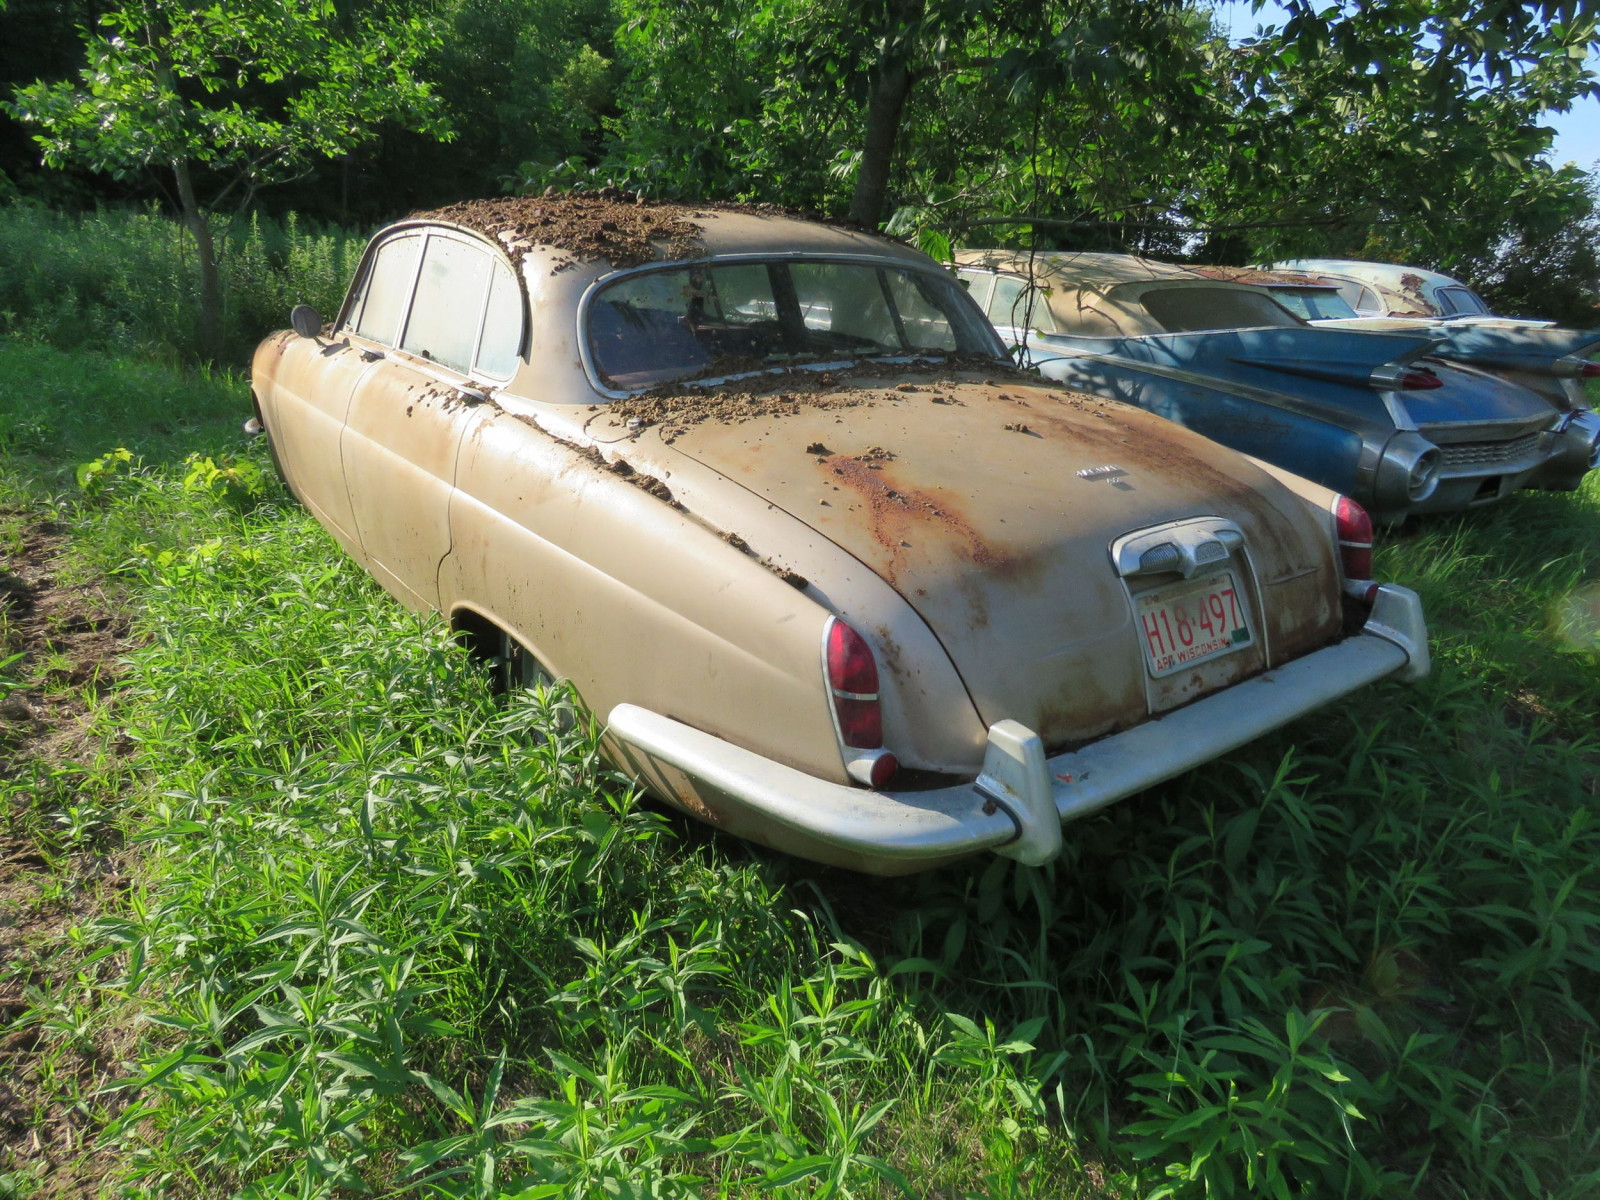 1966 Jaguar 4.2 4dr Sedan - Image 2